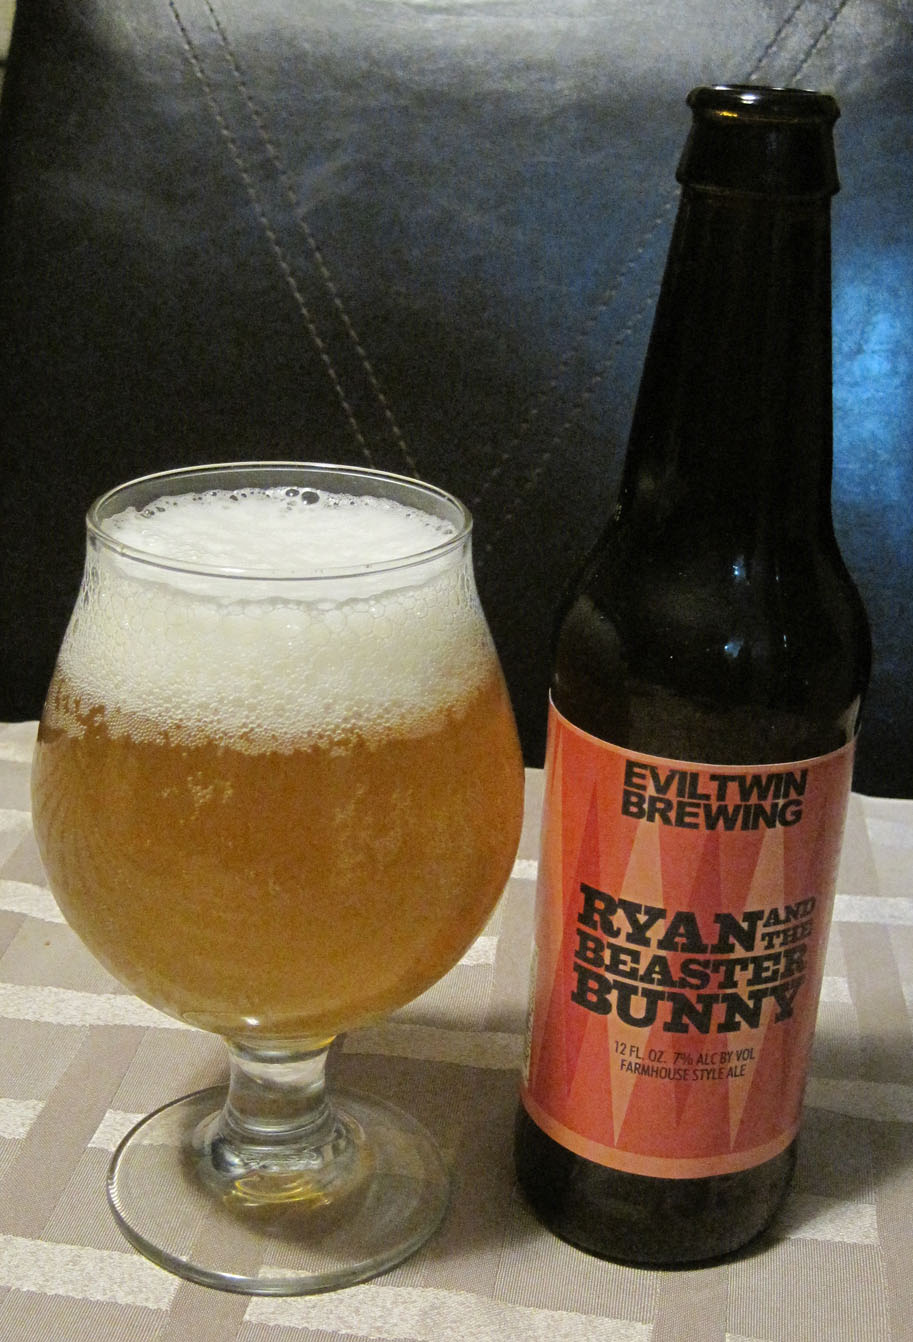 Import Craft Beers Evil Twin Ryan And The Beaster Bunny West